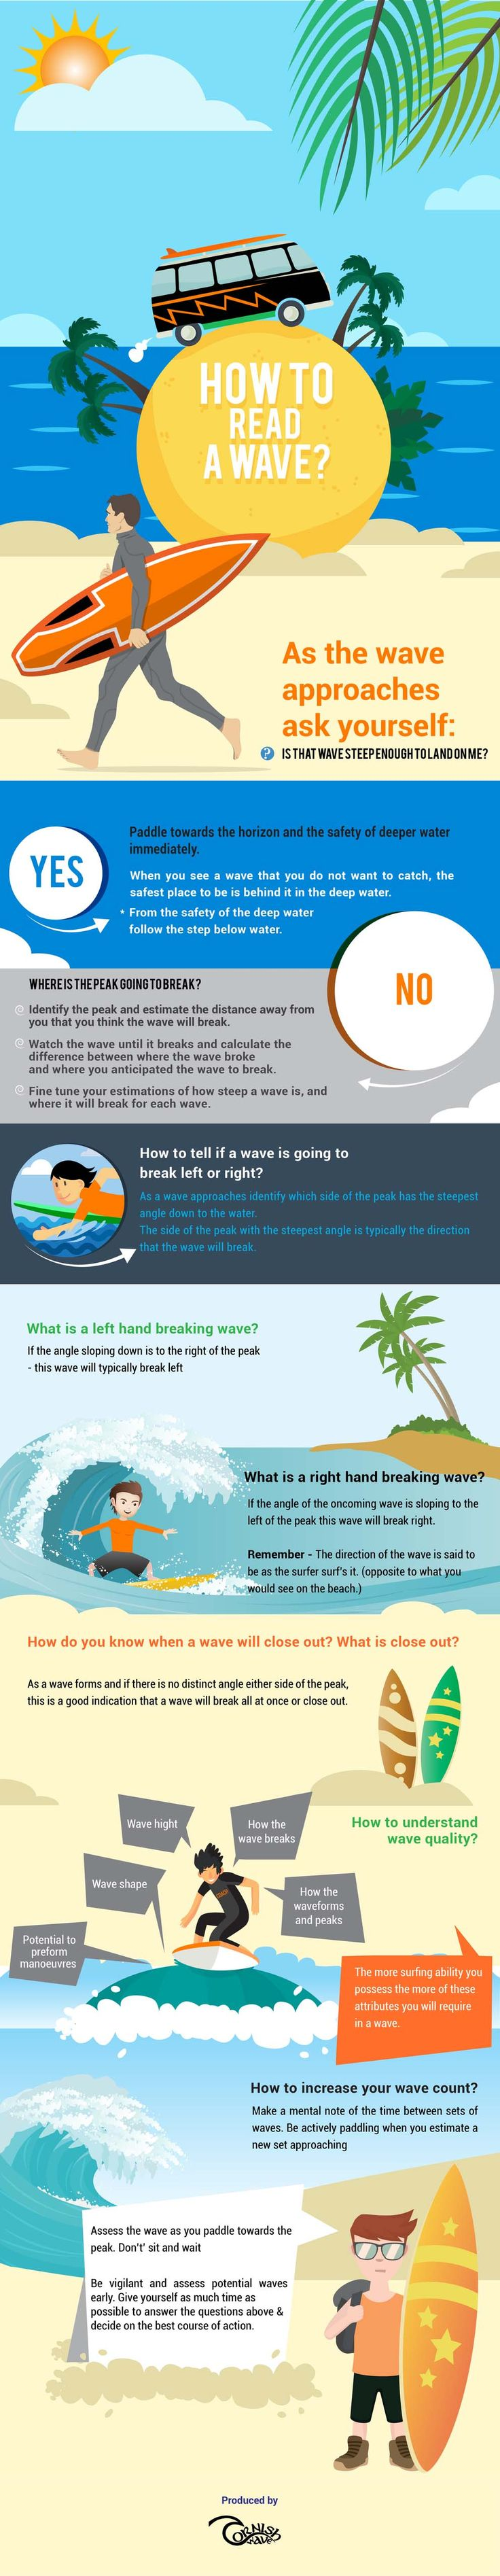 How To Read A Wave